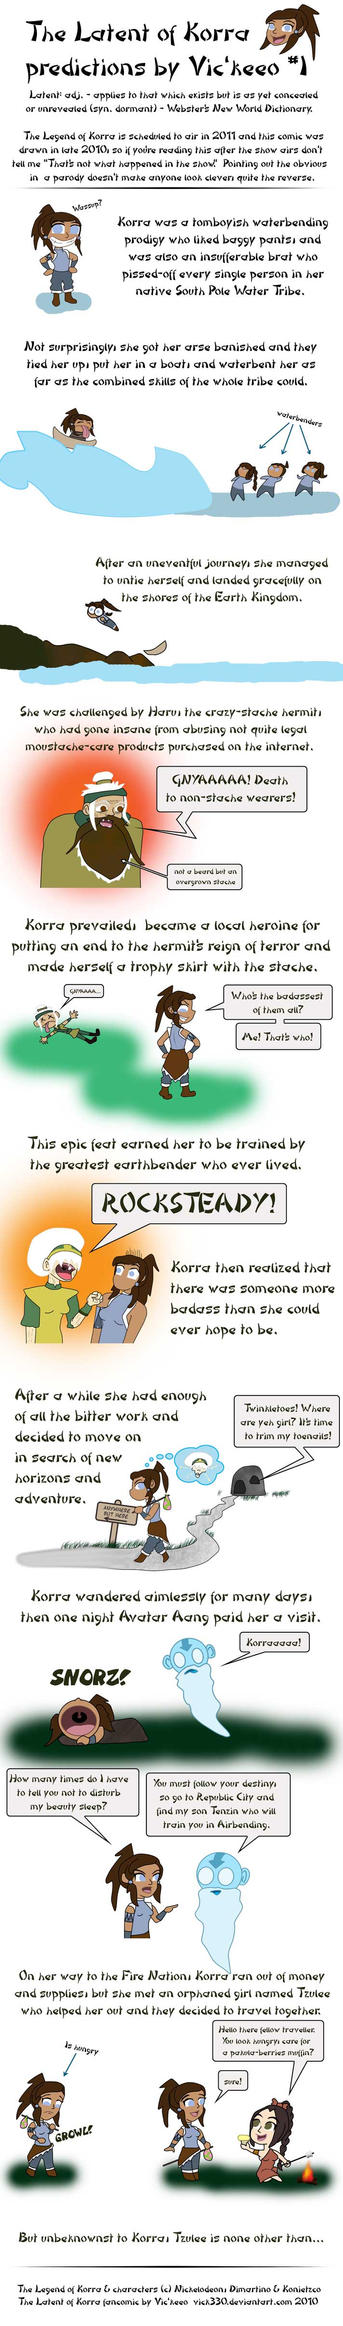 The Latent of Korra 1 by vick330